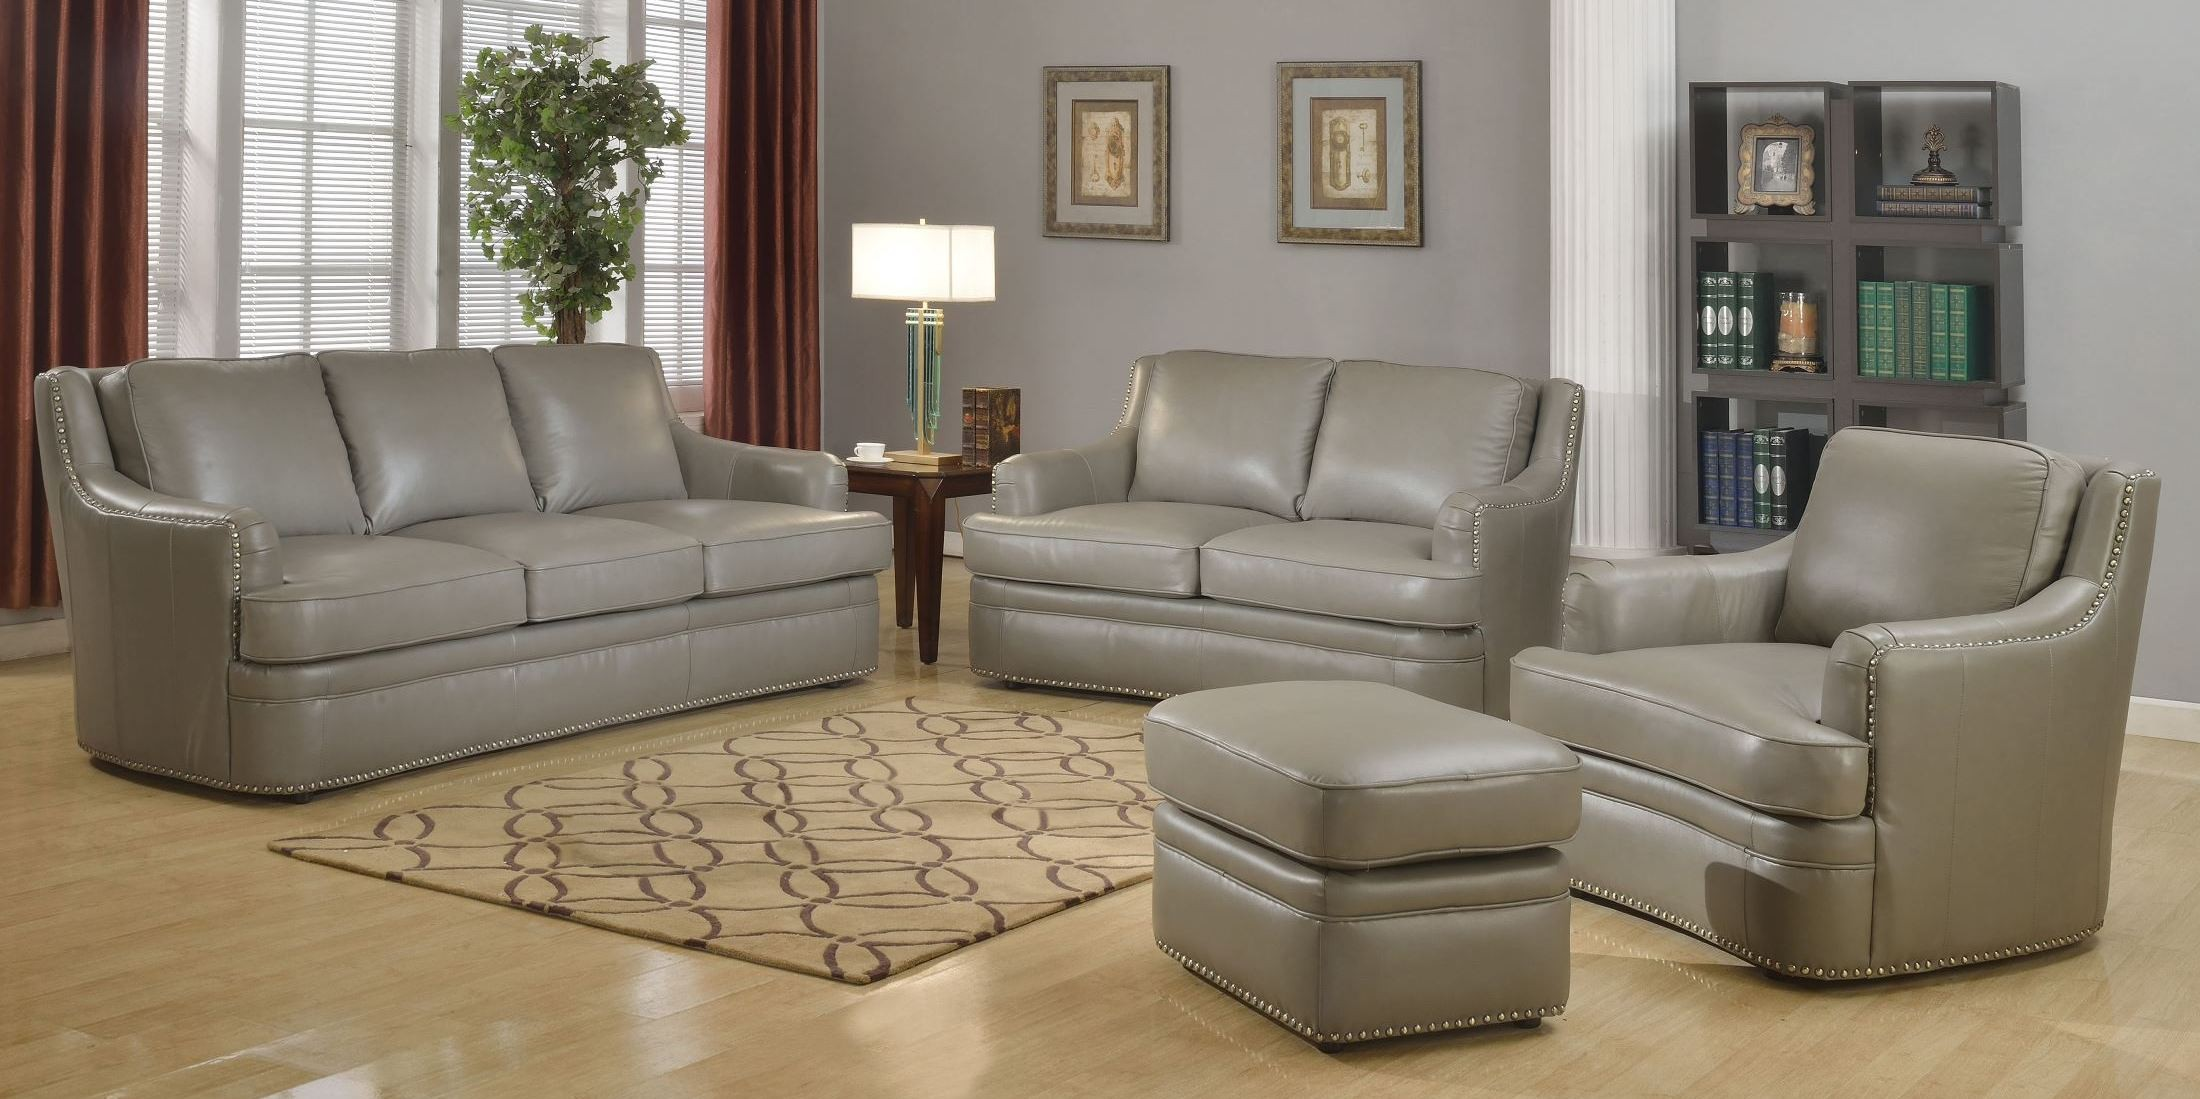 Tulsa Dark Gray Living Room Set From Leather Italia 1444